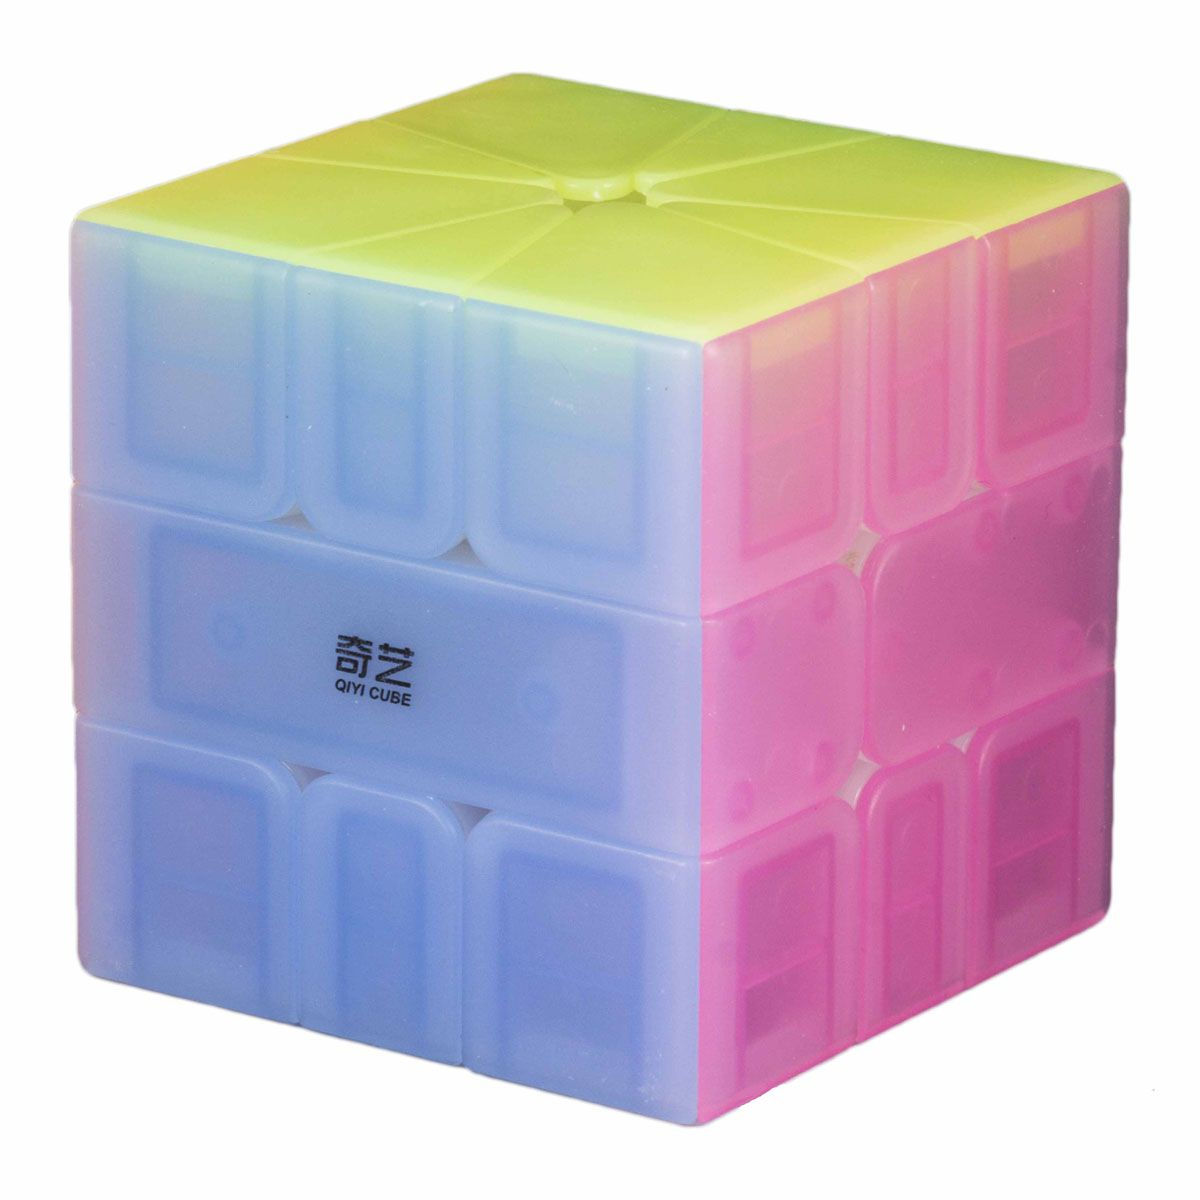 Square-1 Qifa Jelly